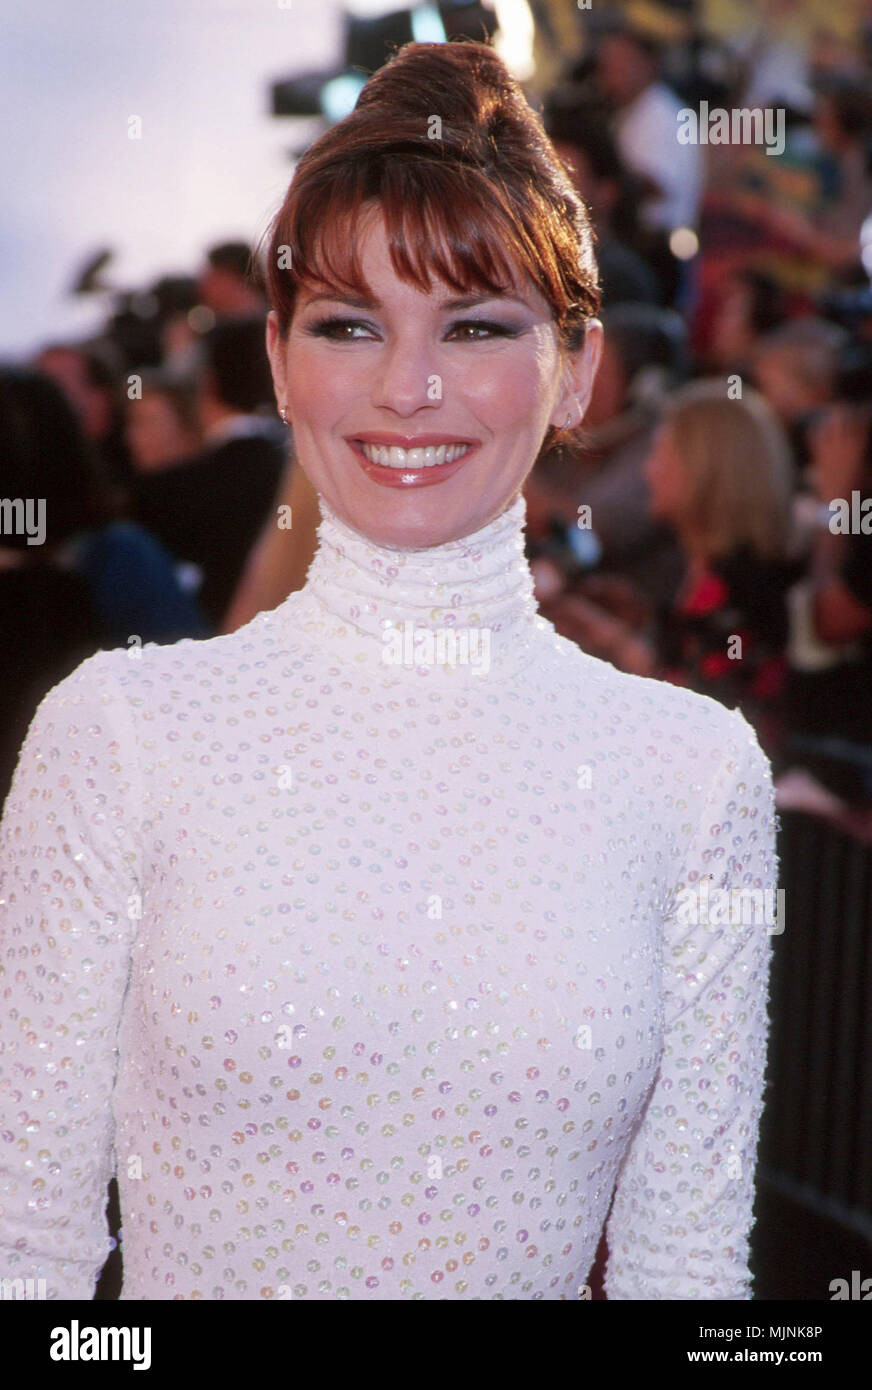 Portrait of Shania Twain --- ' Tsuni / - 'Shania Twain Shania Twain one person, Vertical, Best of, Hollywood Life, Event in Hollywood Life - California,  Red Carpet Event, Vertical, USA, Film Industry, Celebrities,  Photography, Bestof, Arts Culture and Entertainment, , , Topix - Stock Image